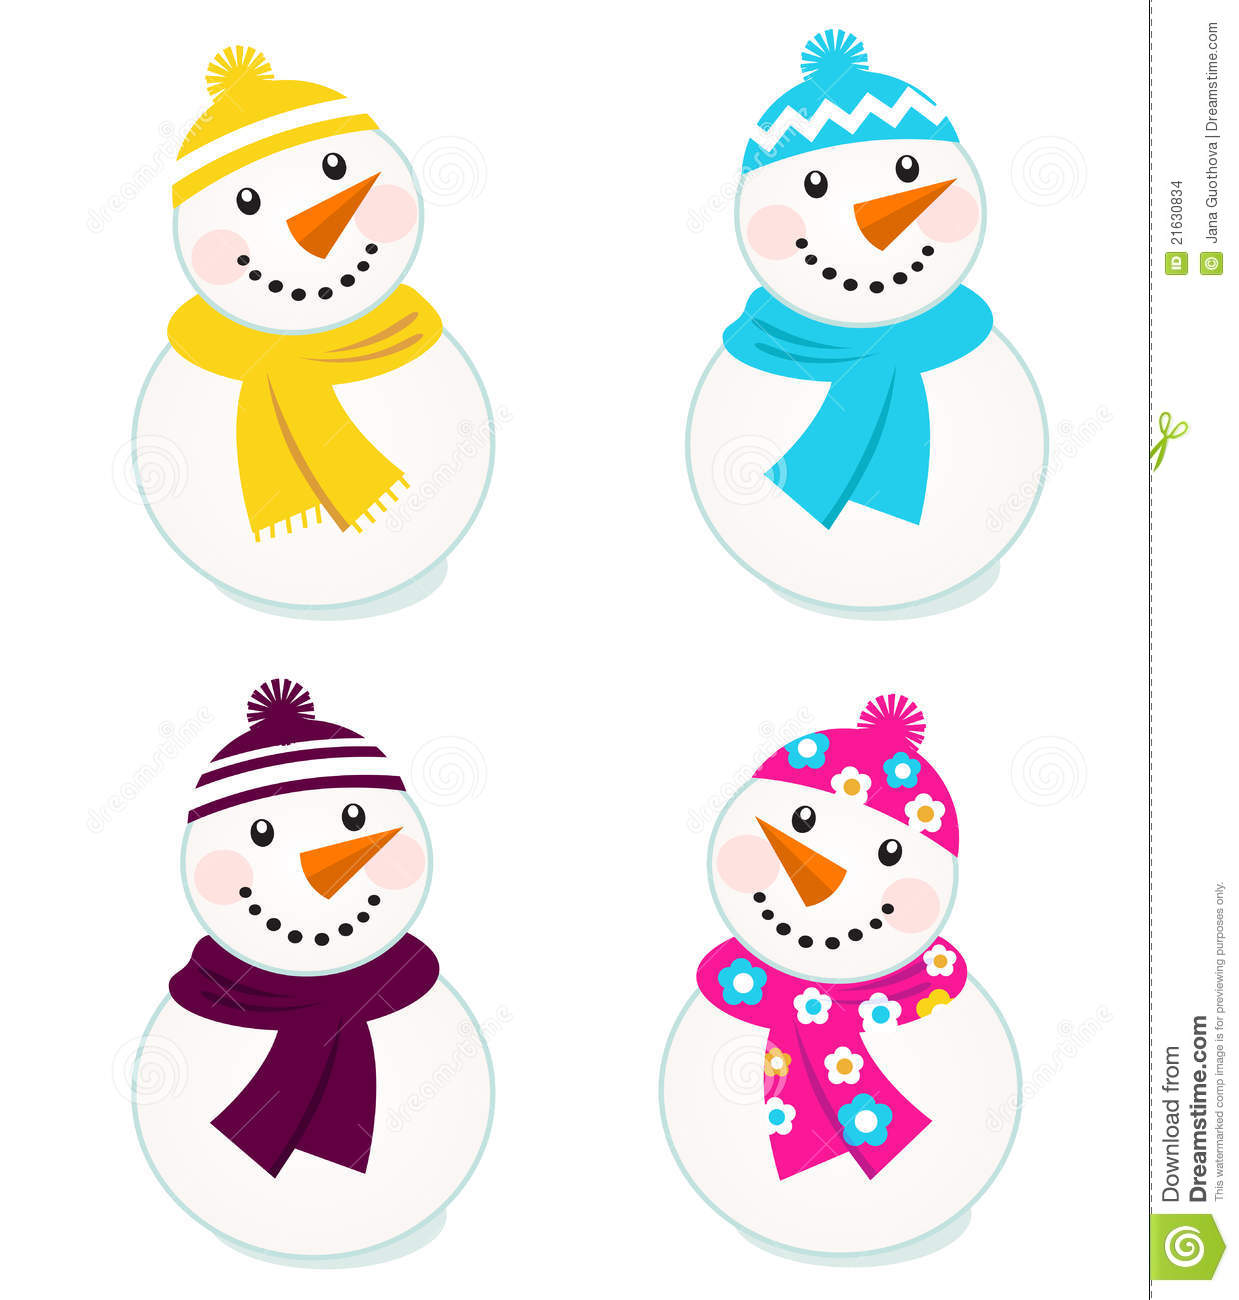 Snowman clipart colorful. Snowmen free download best